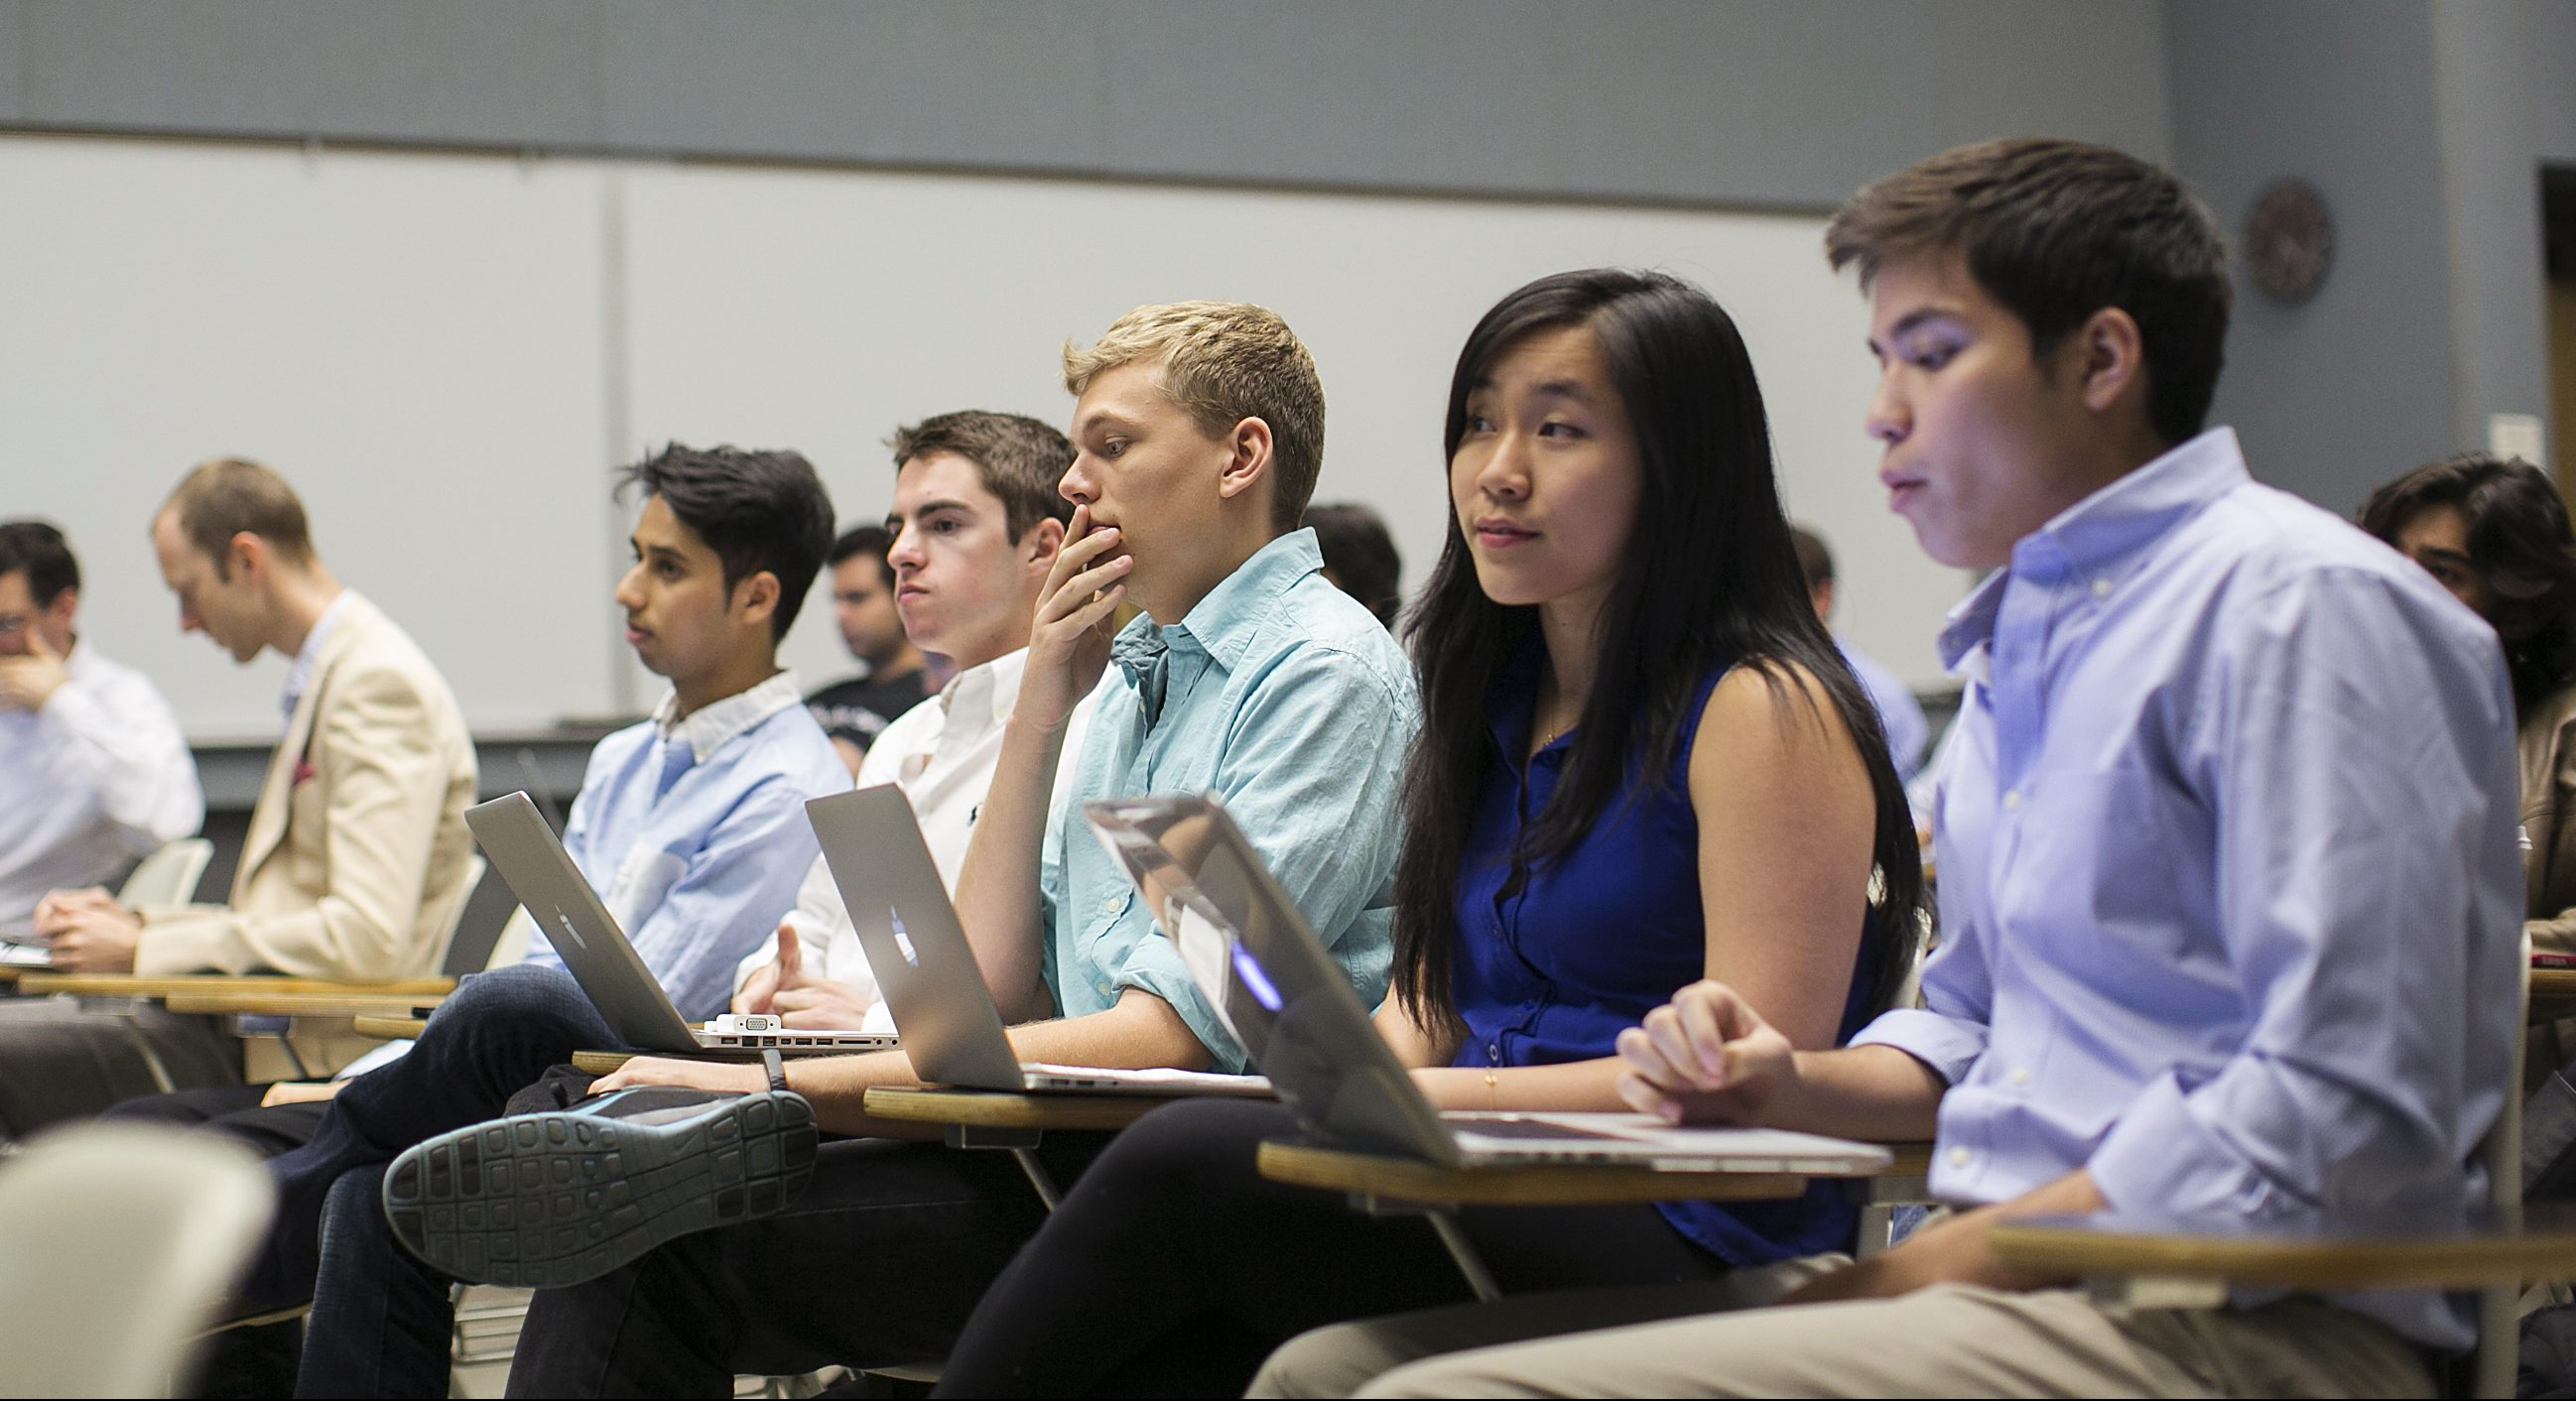 Stanford University students listen while classmates make a presentation to a group of visiting venture capitalists during their Technology Entrepreneurship class in Stanford, California March 11, 2014.  REUTERS/Stephen Lam (UNITED STATES - Tags: EDUCATION) - RTR3QTMX